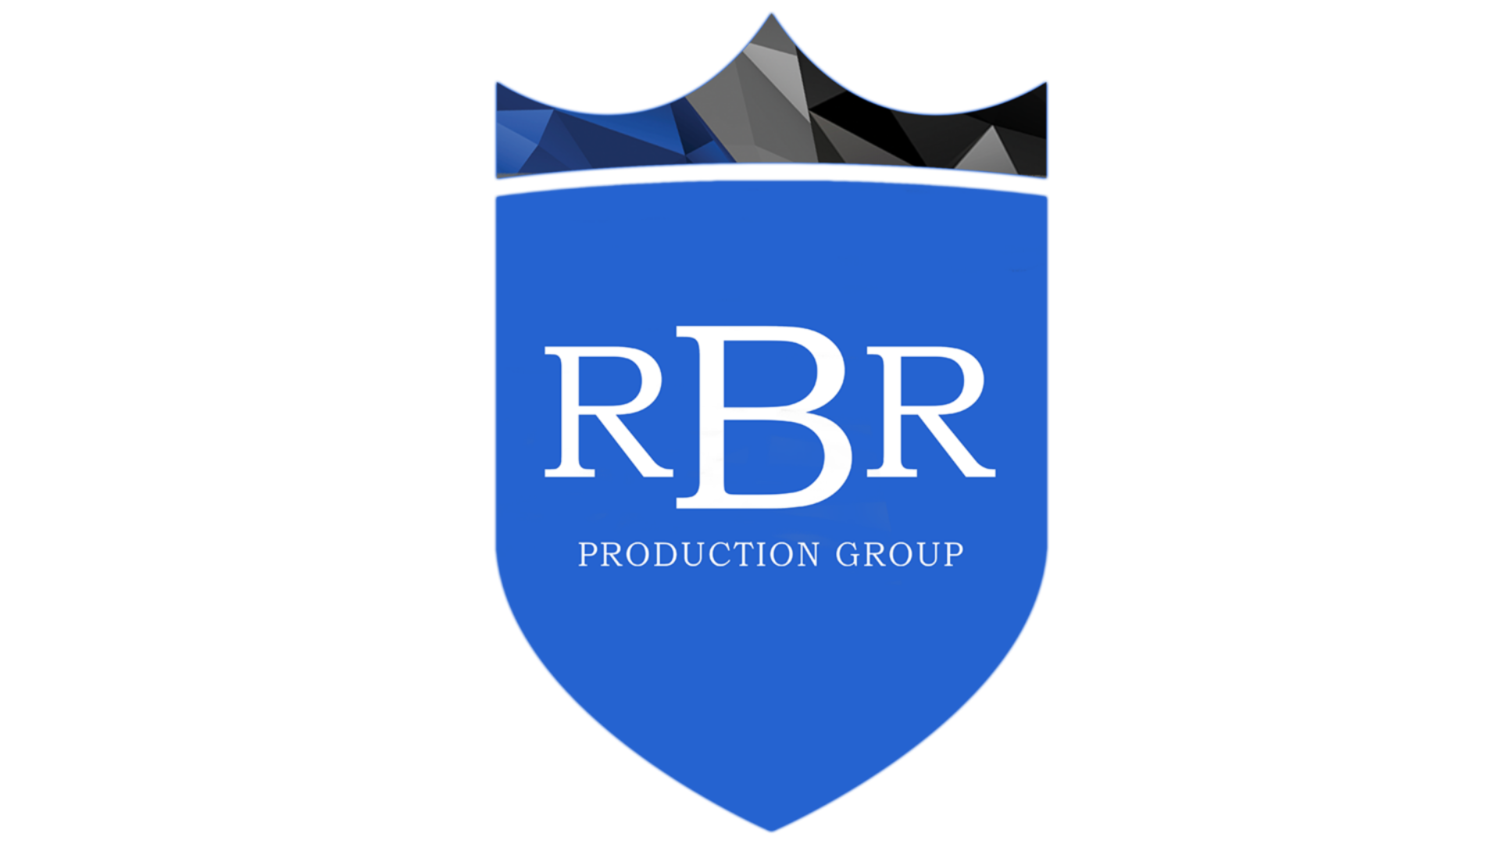 RBR PRODUCTION GROUP